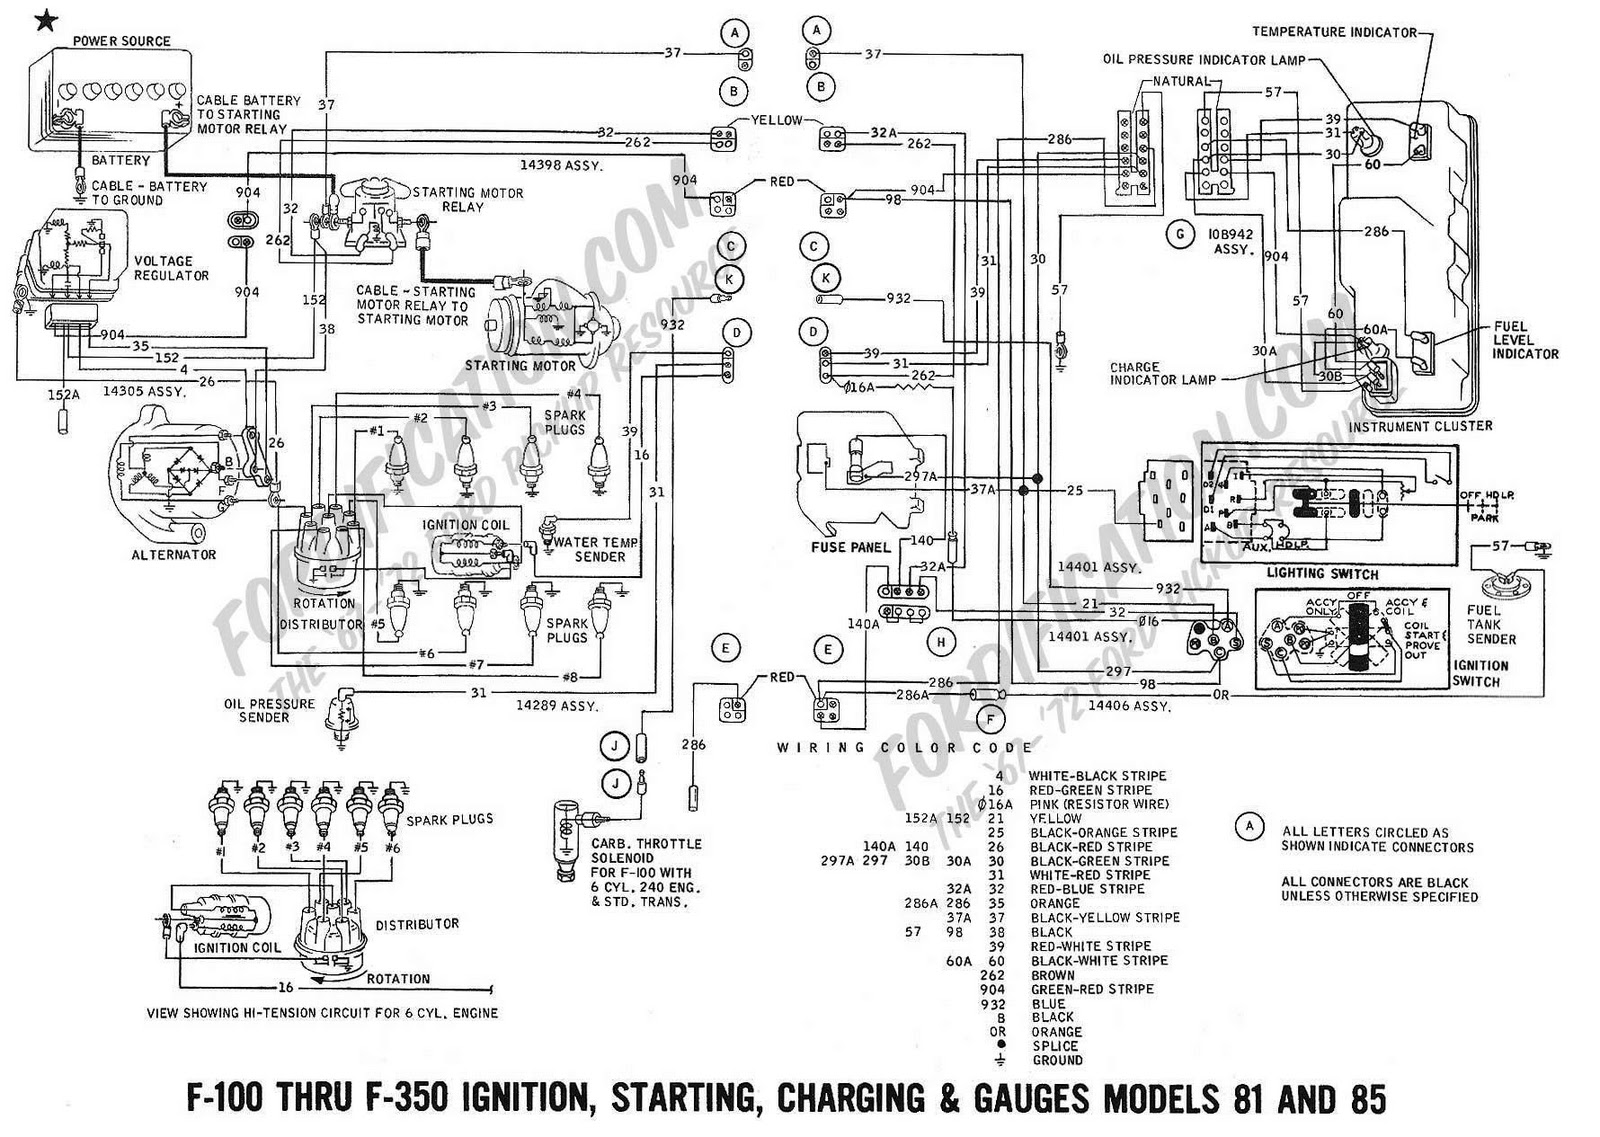 1964 Mustang Wiring Diagrams as well 1967 Mustang Wiring And Vacuum Diagrams as well Pontiac Gto Tail Light Wiring together with Schematics h as well 1965 Ford Galaxie Alternator Wiring Diagram. on 65 mustang alternator wiring diagram